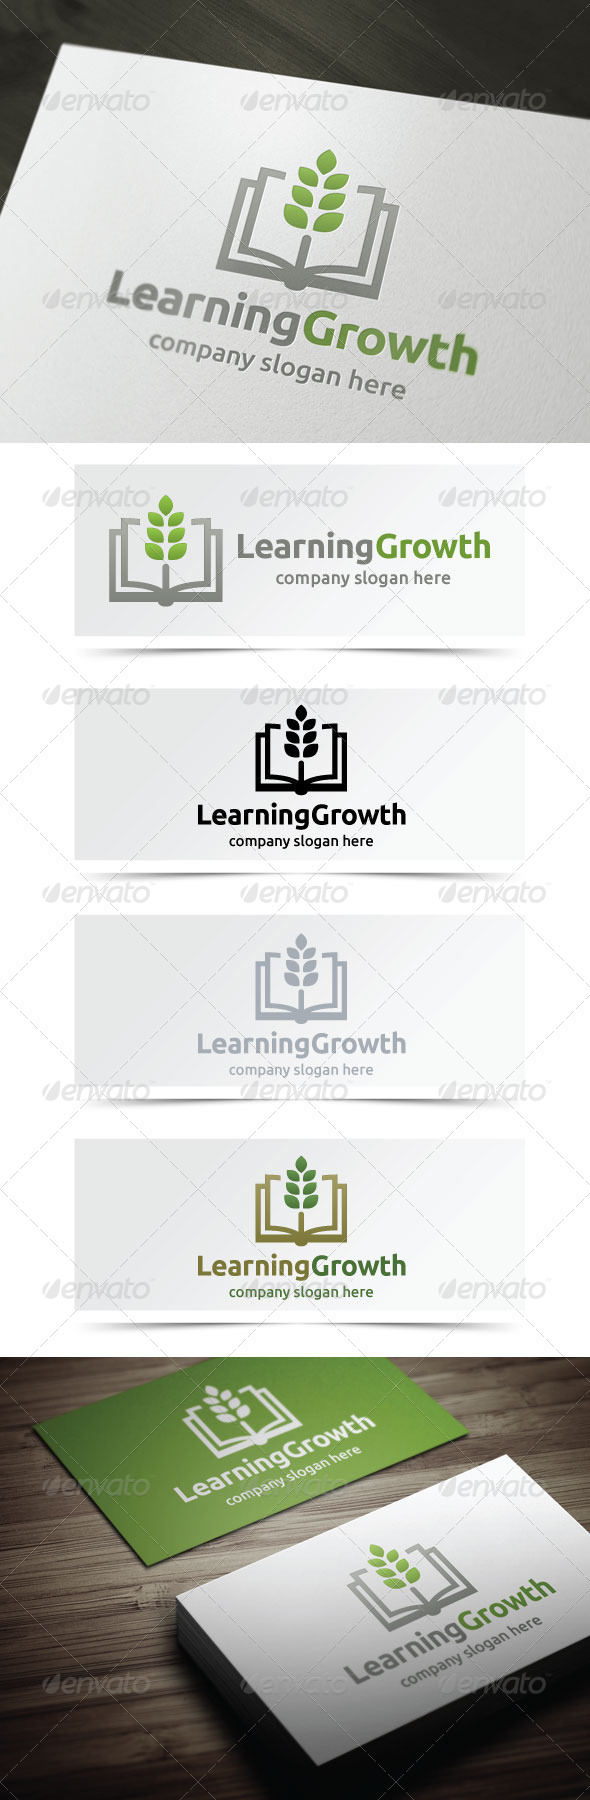 GraphicRiver Learning Growth 5020578